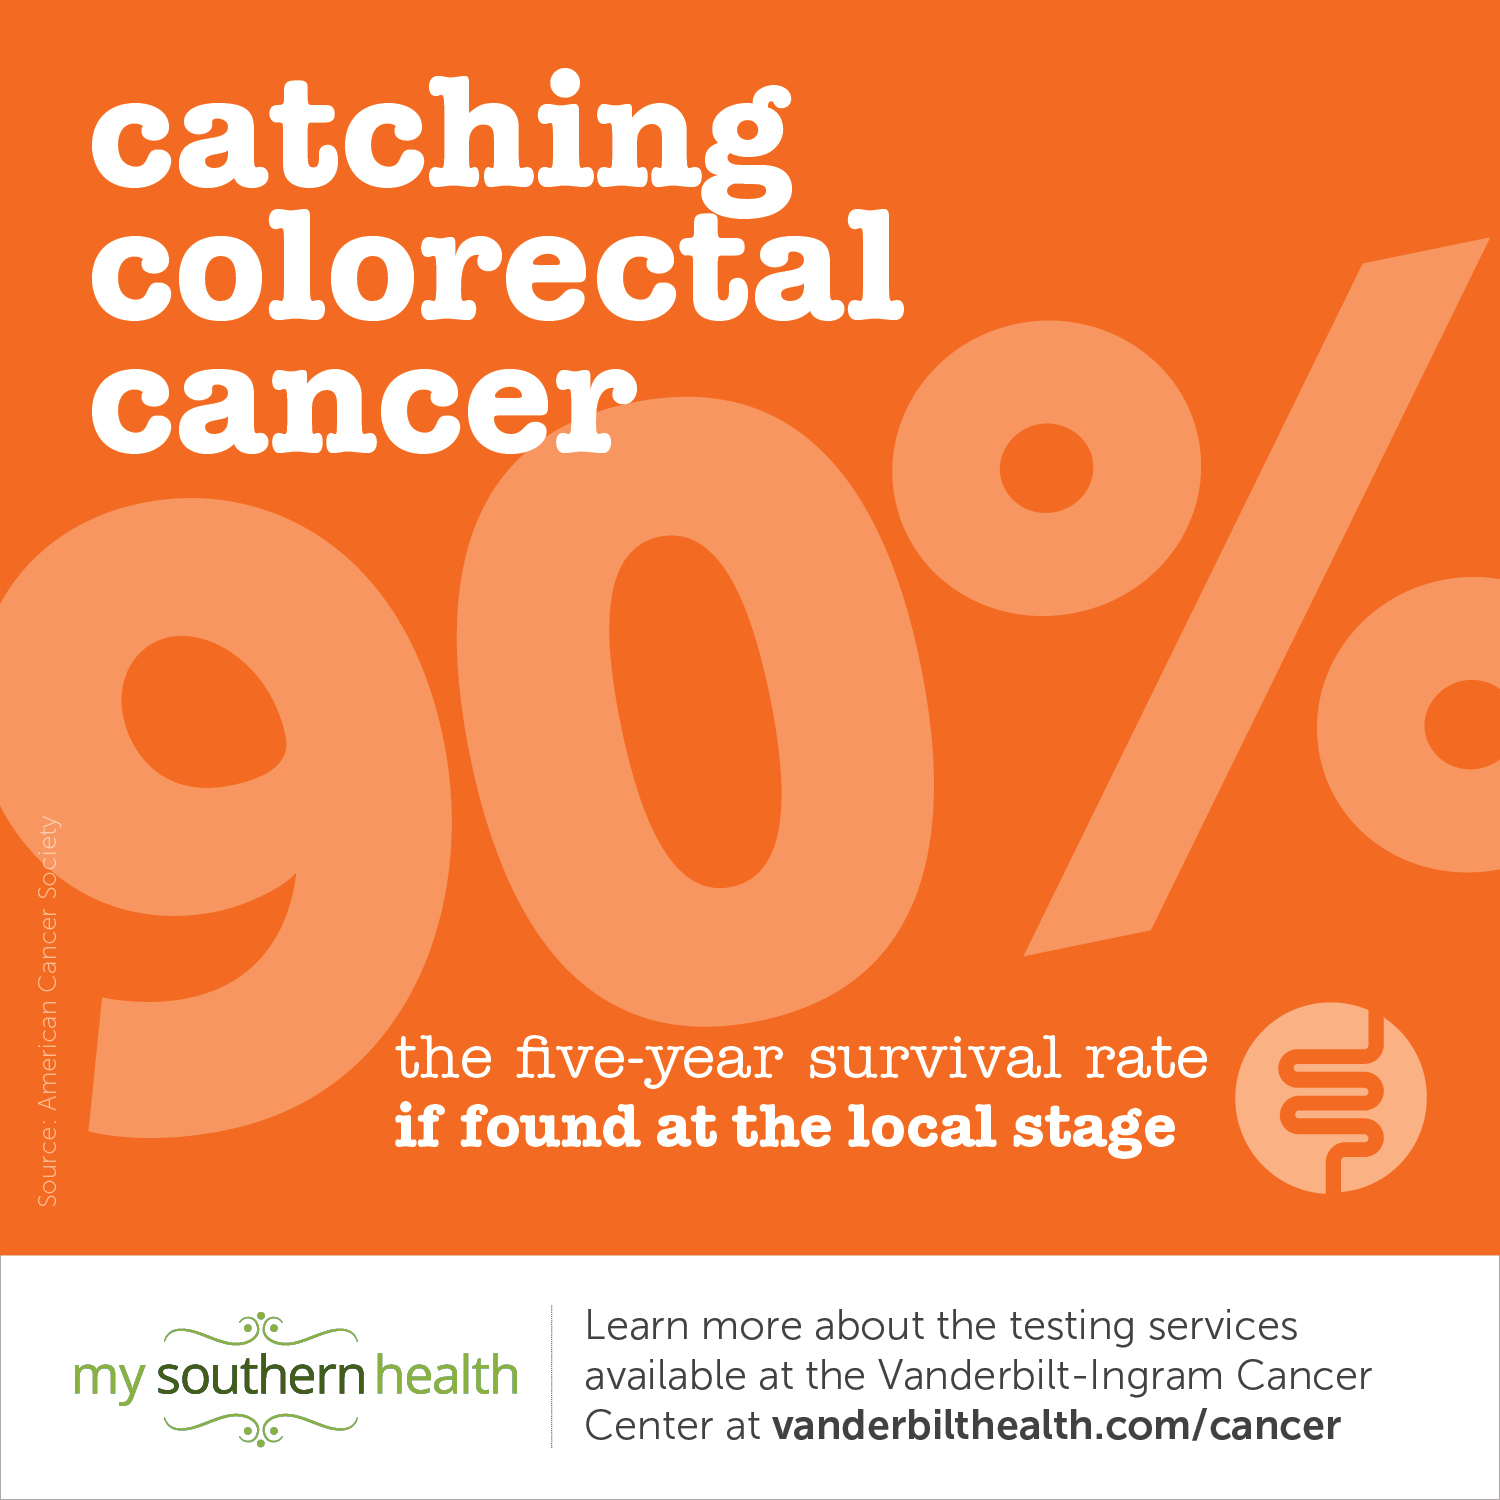 03_09 Cancer Factoid